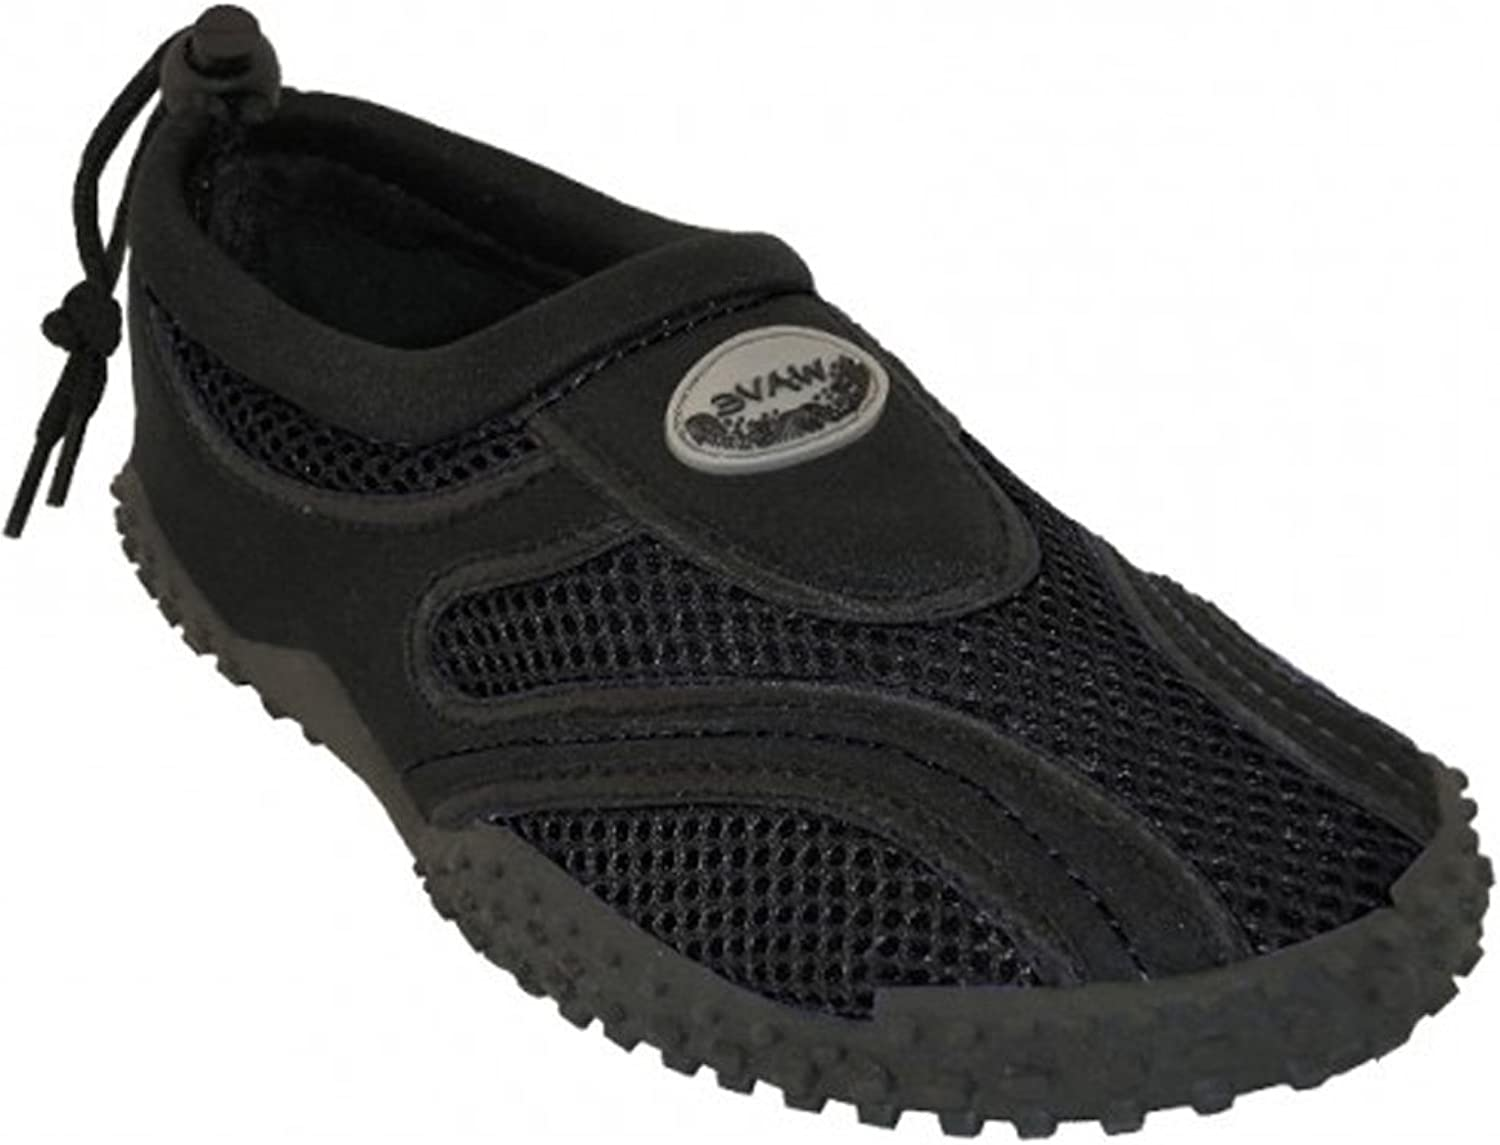 Easy USA Women's Wave Water shoes - Black (9)